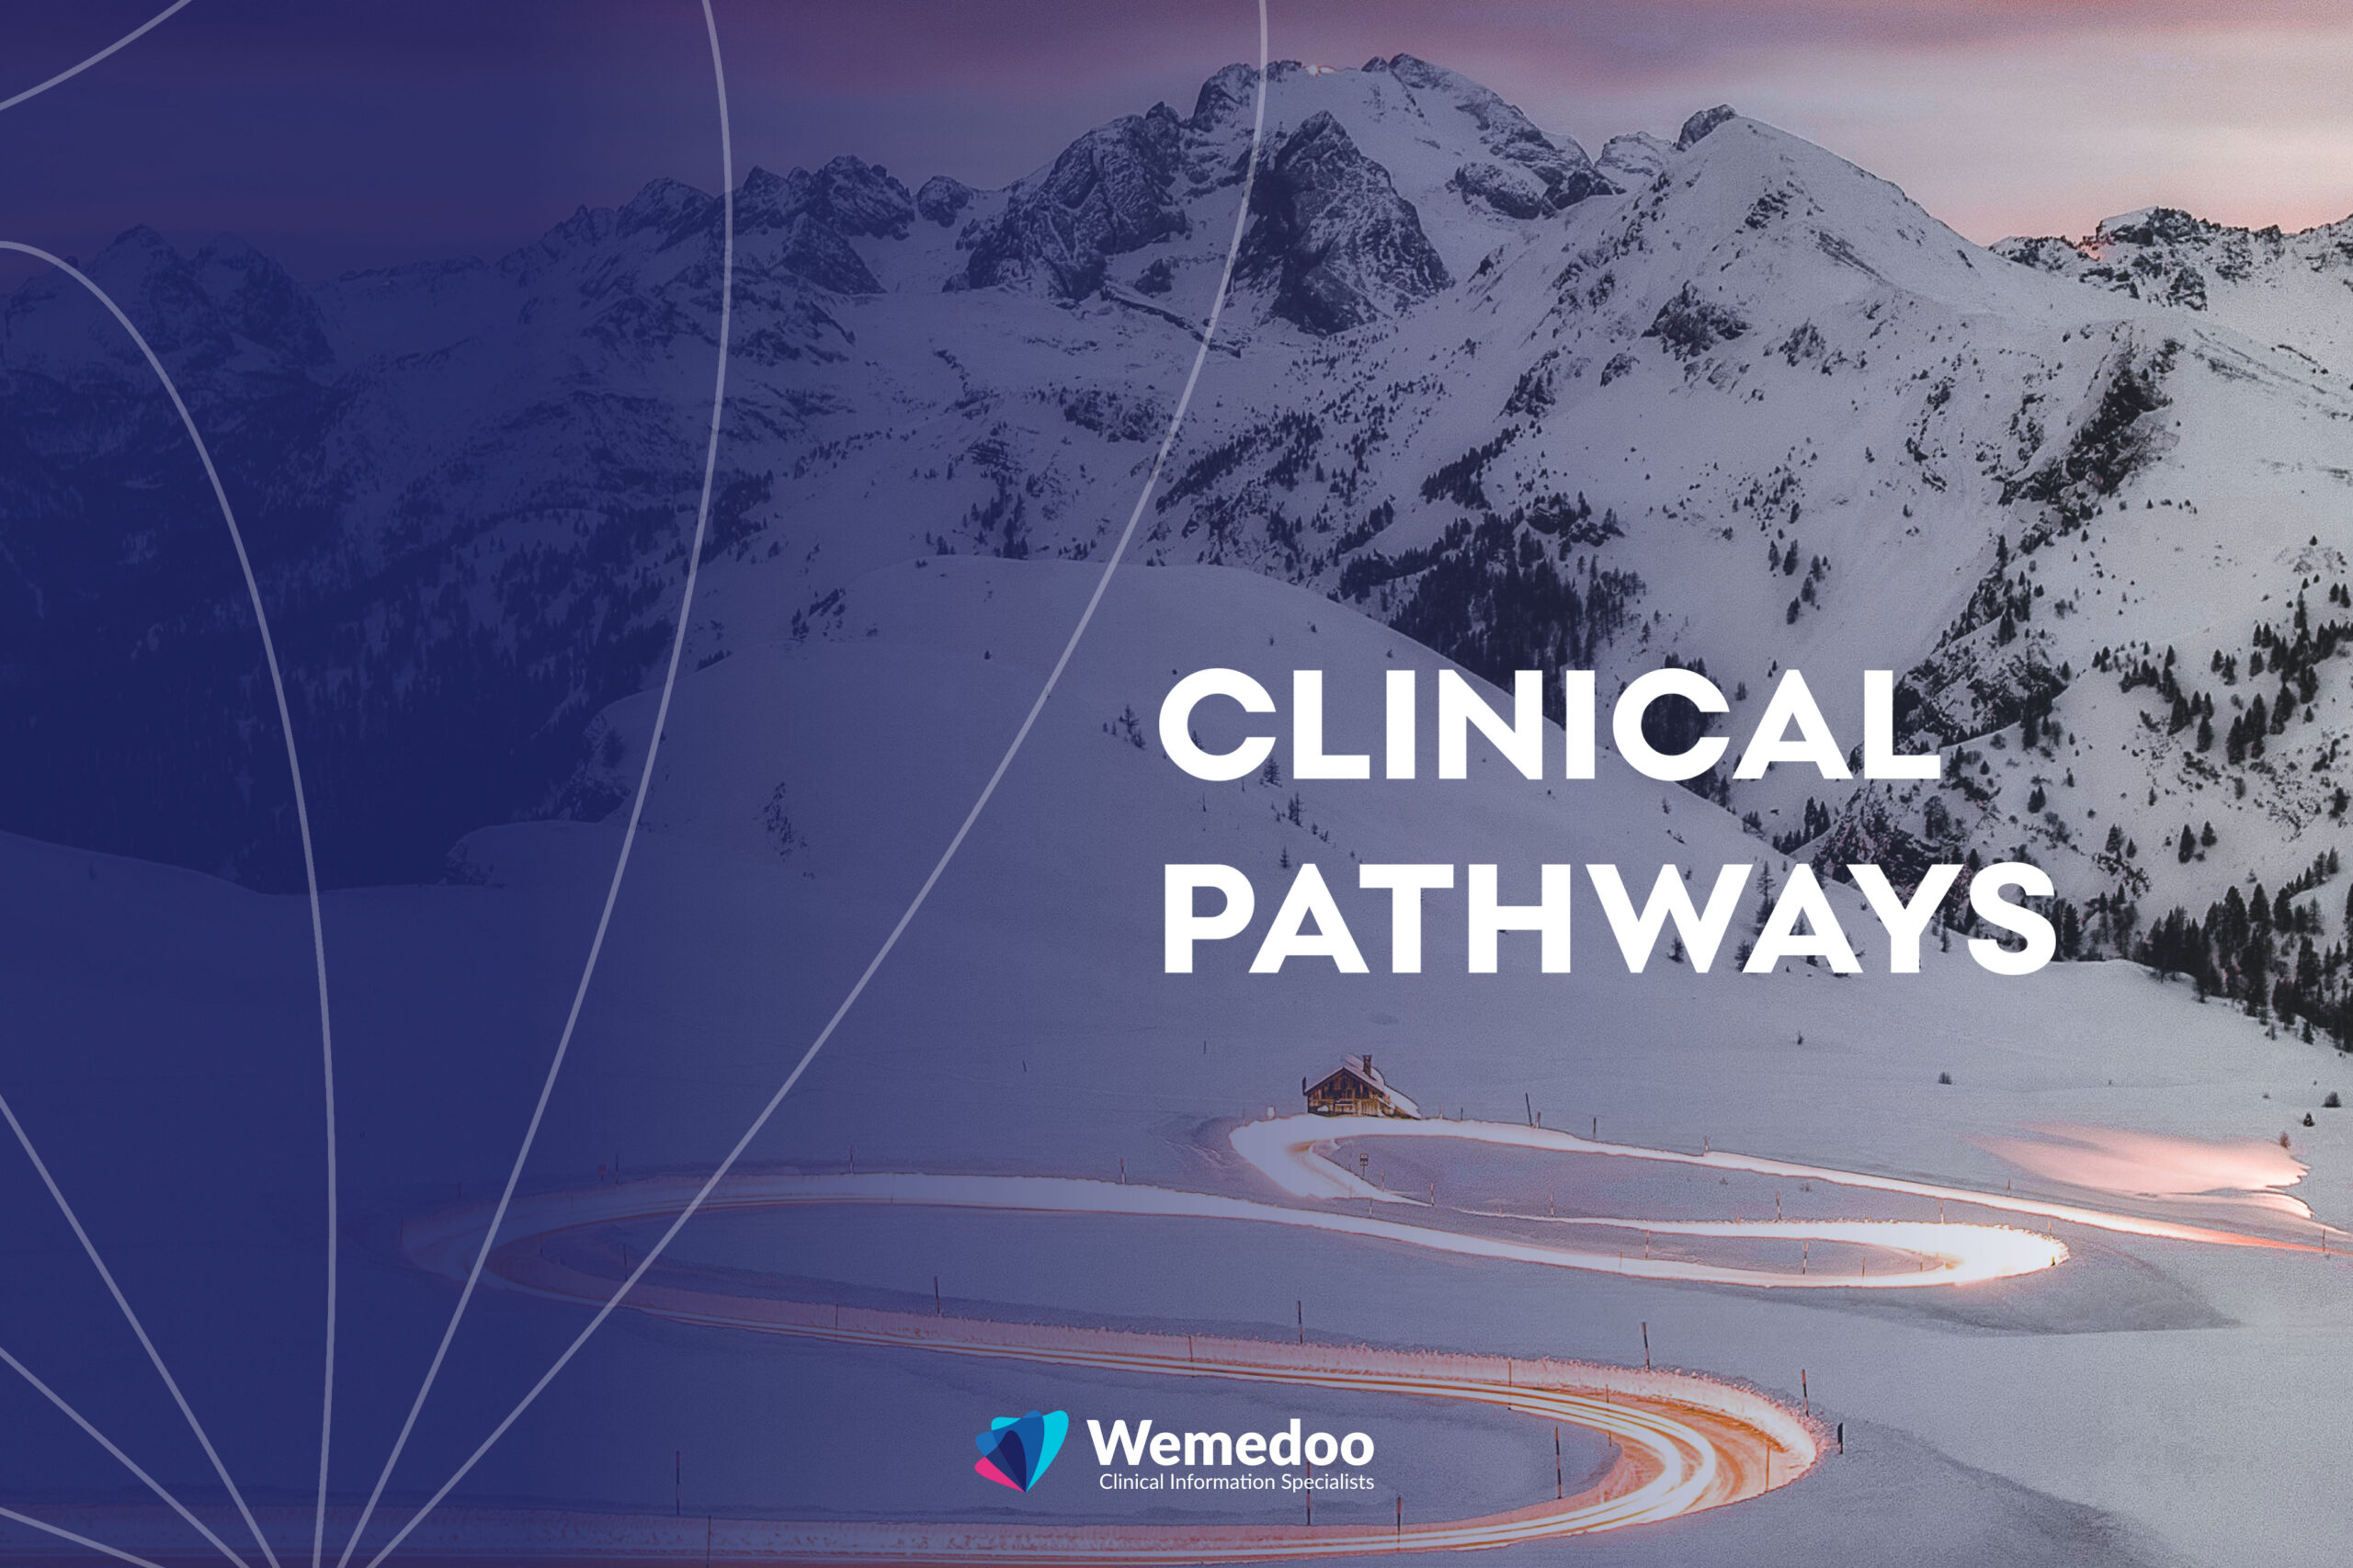 Clinical Practice Guidelines and Pathways for the 21 Century